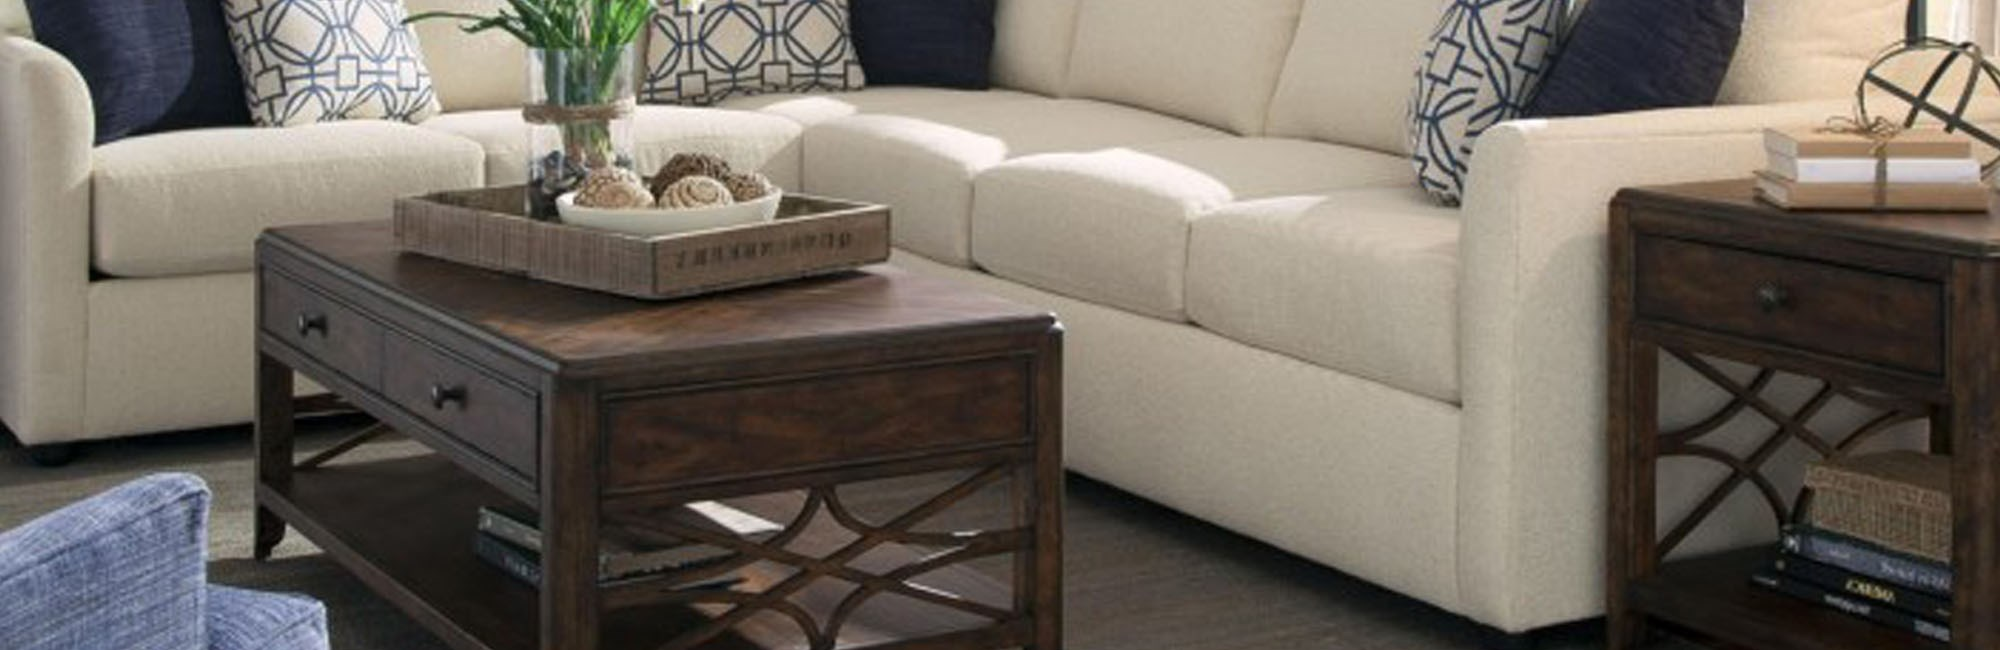 accent tables ruby gordon home rochester henrietta accents new table behind couch furniture outdoor iron coffee runner pier locations bath and beyond ice cream maker silver